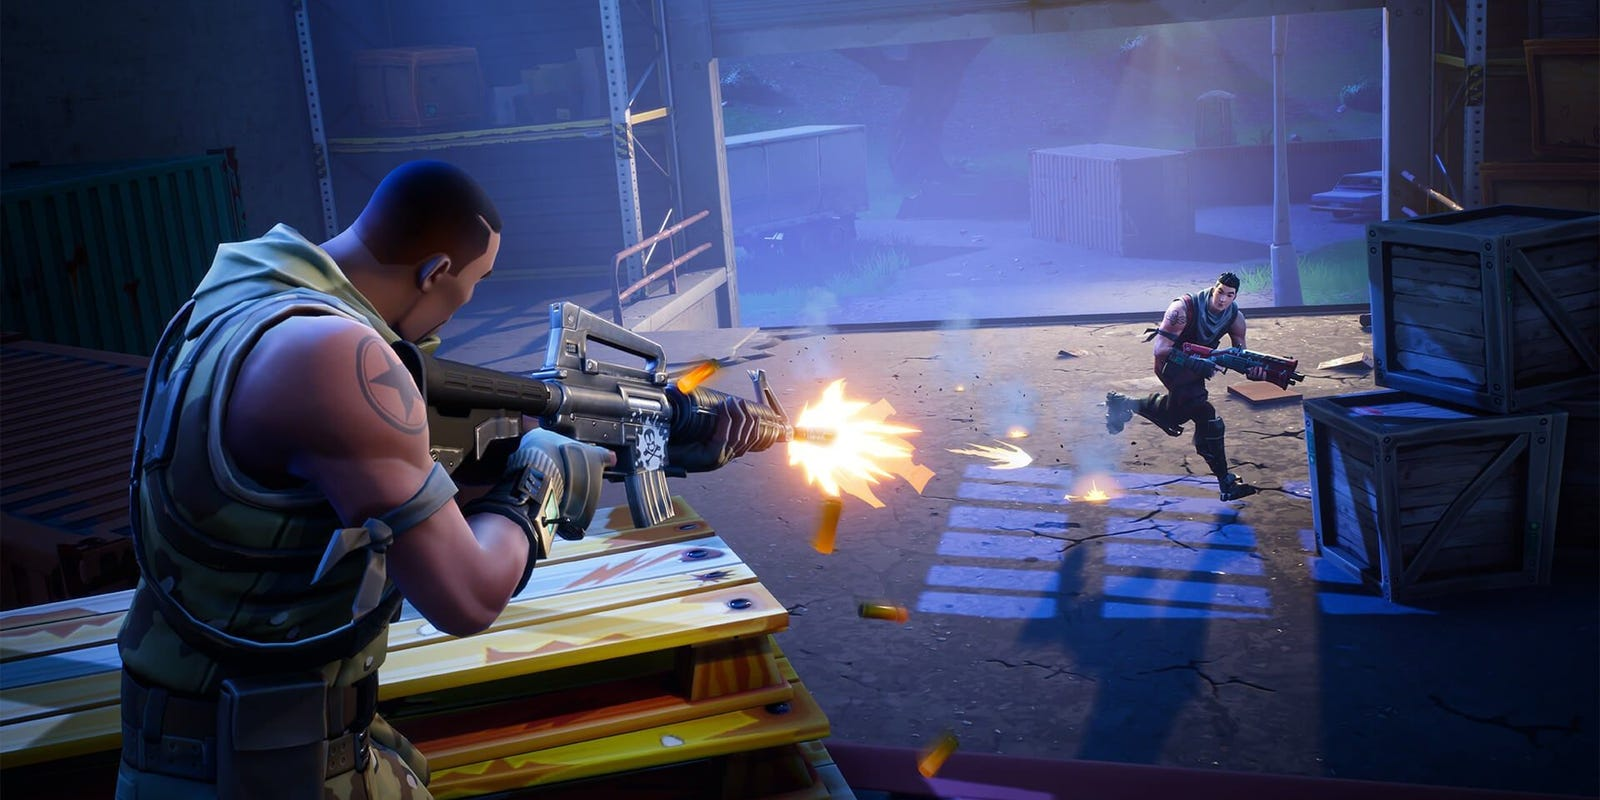 Apple is seeking damages from Epic Games